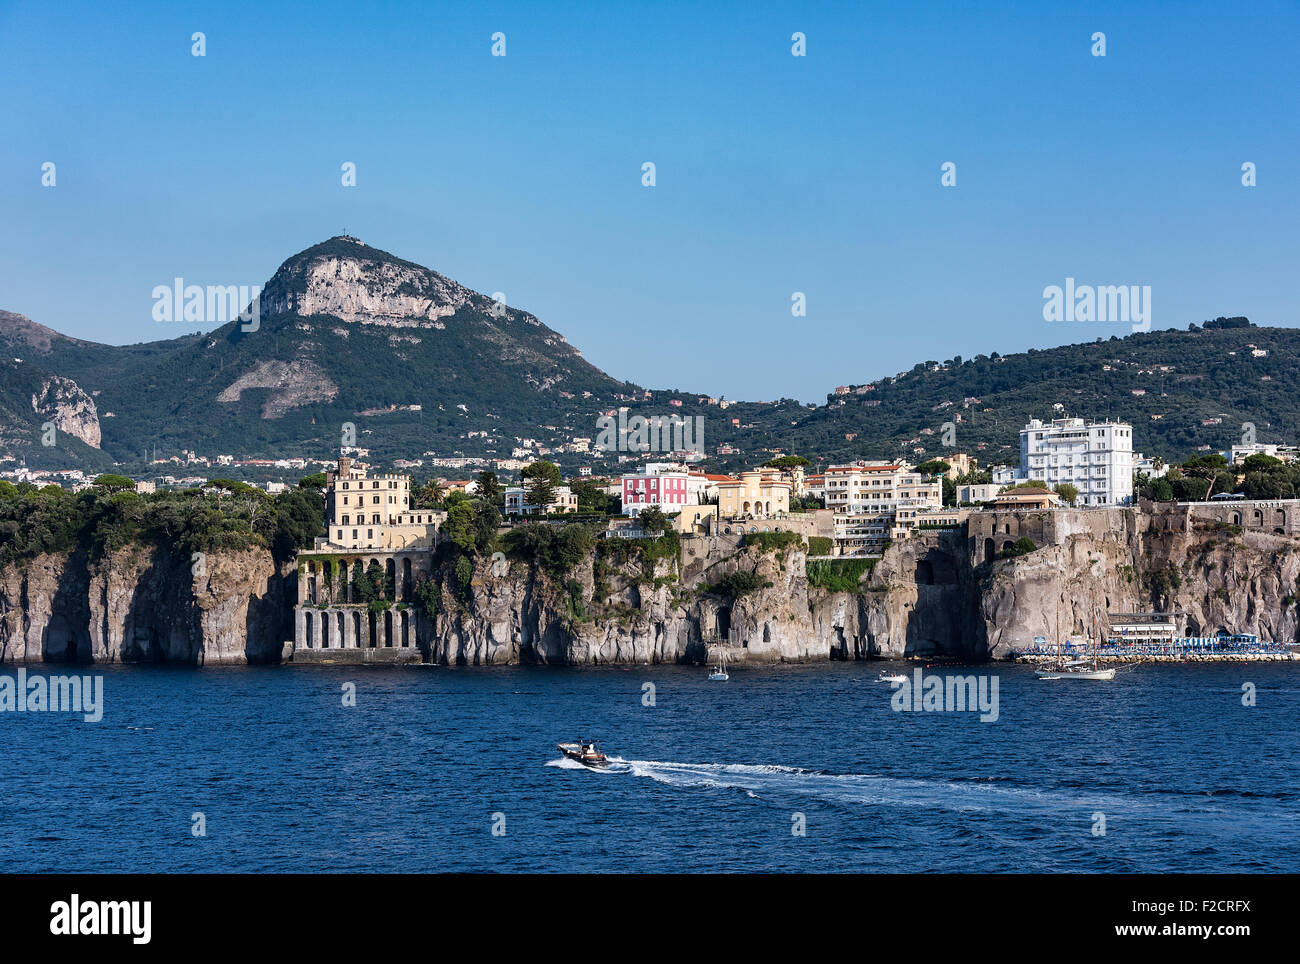 Sea cliffs and waterfront architecture, Sorrento, Italy - Stock Image